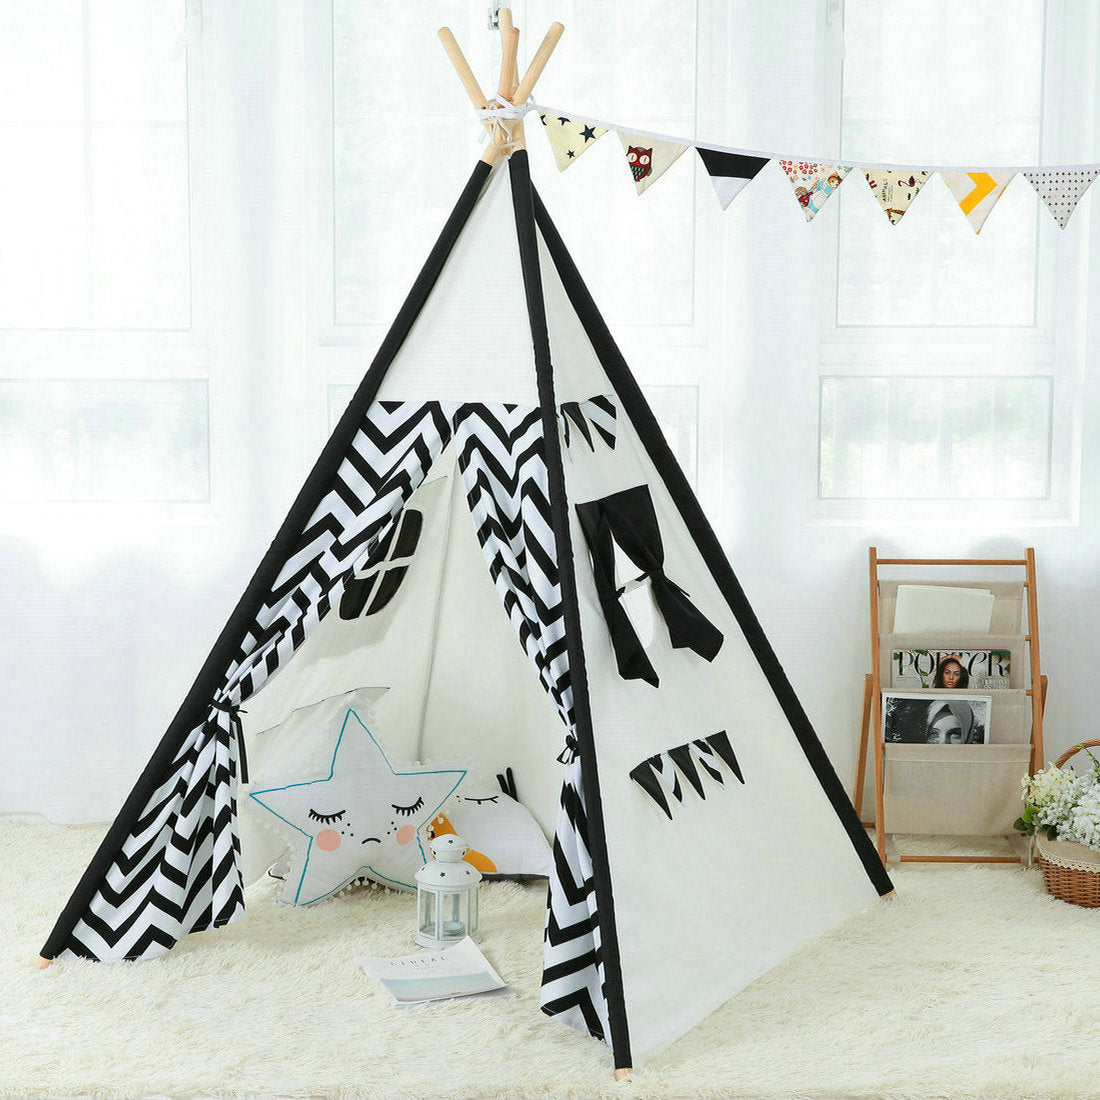 Kids Teepee Indoor Play tent - Large Cotton Canvas Children Indian Tipi Playhouse with Carry Case  sc 1 st  Steegic & Kids Teepee Indoor Play tent - Large Cotton Canvas Children Indian ...